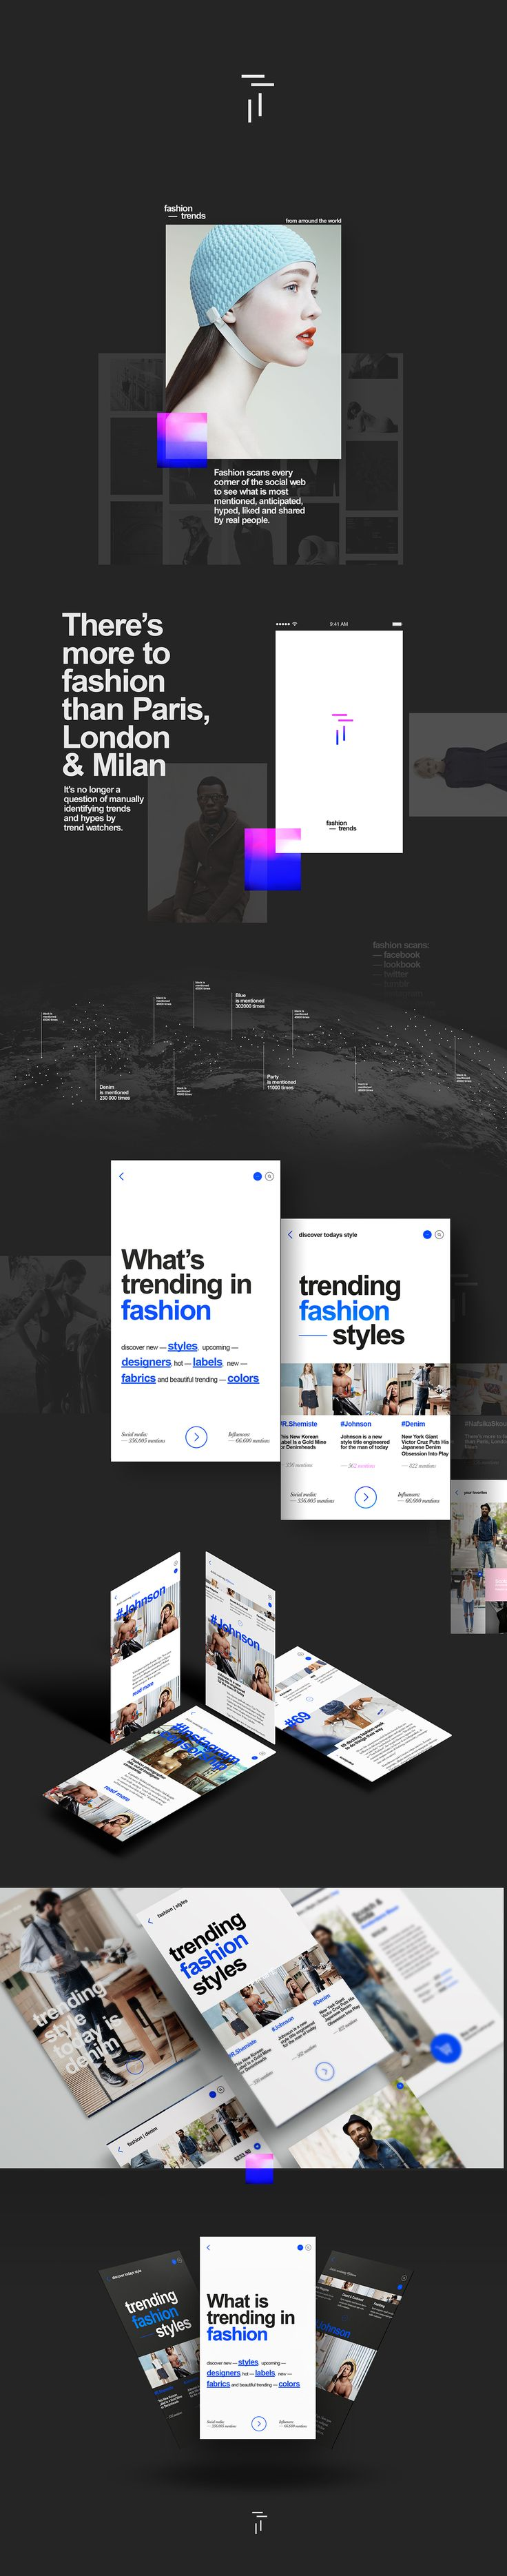 #fashion trends on App Design Served